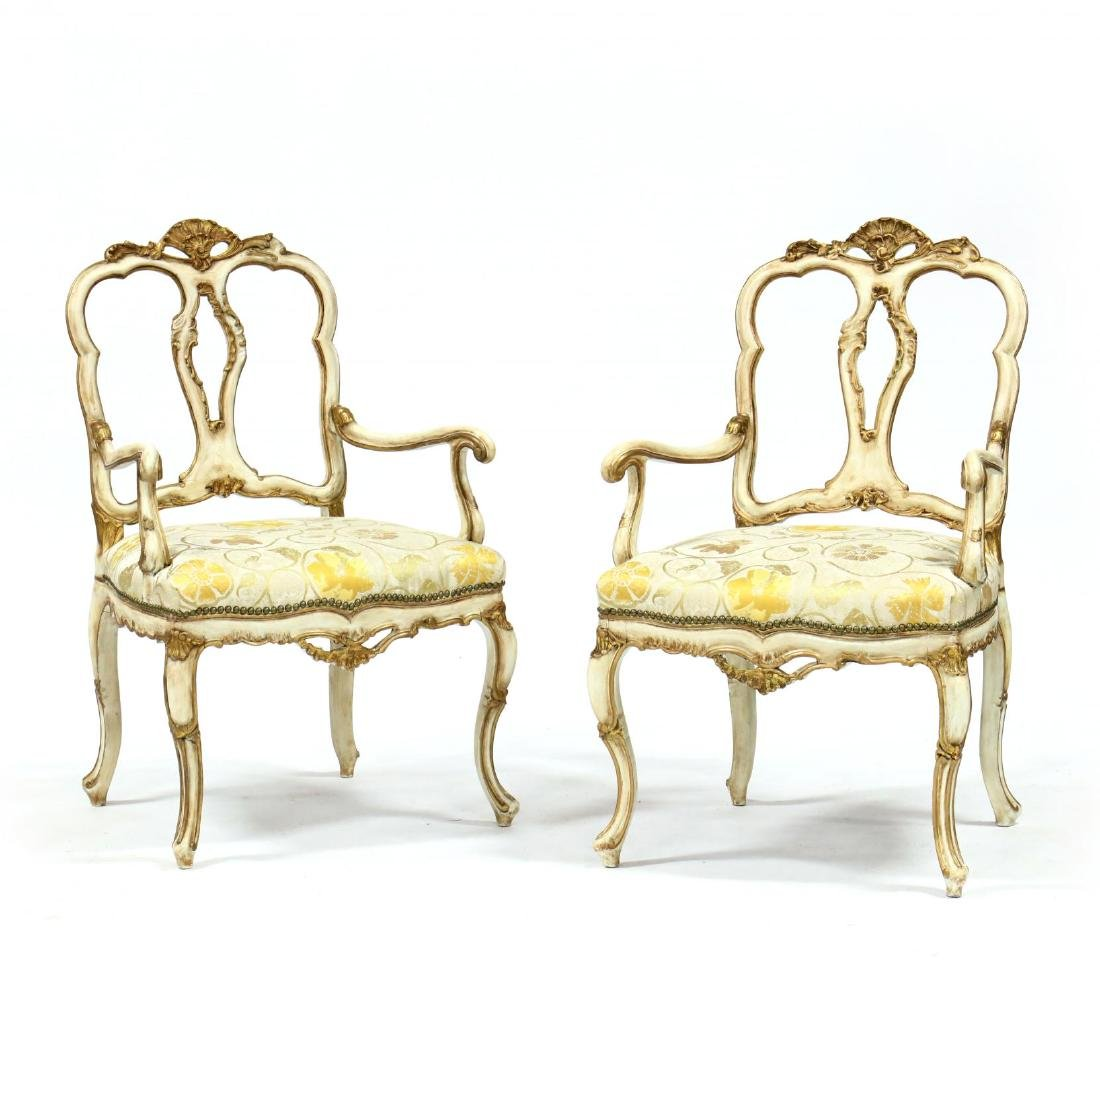 Pair of Louis XV Style Painted Fauteuil